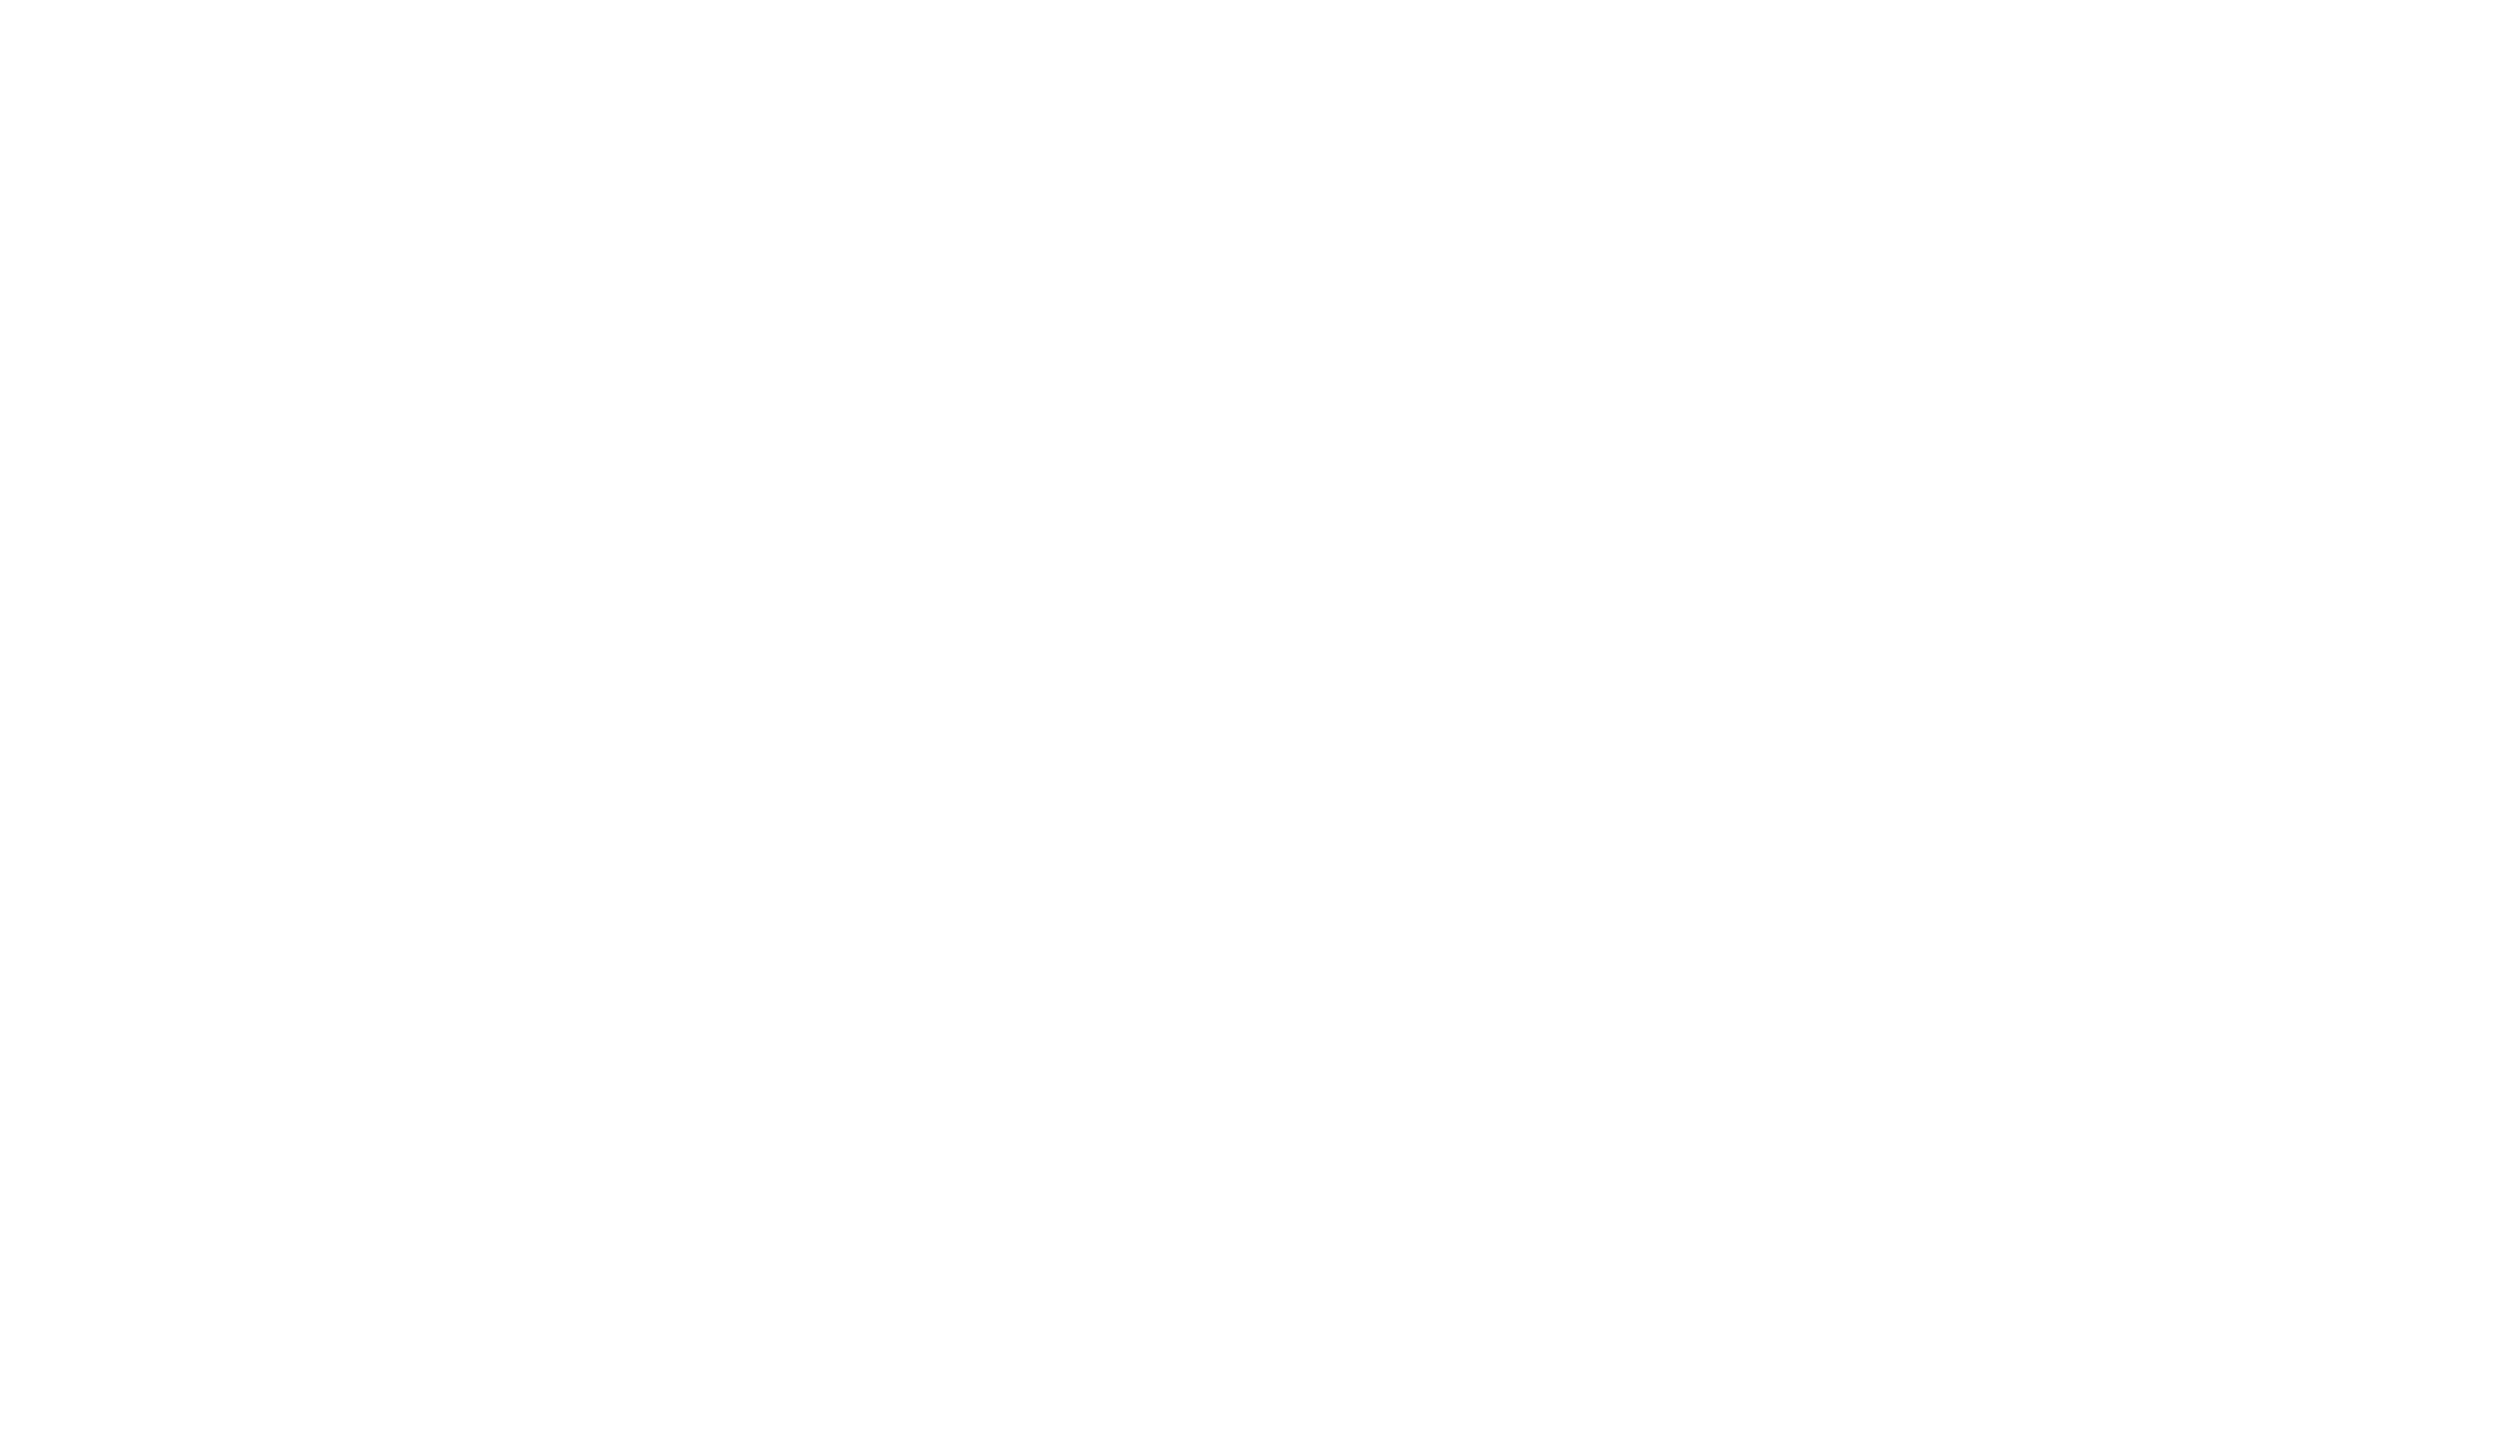 Aria Digital